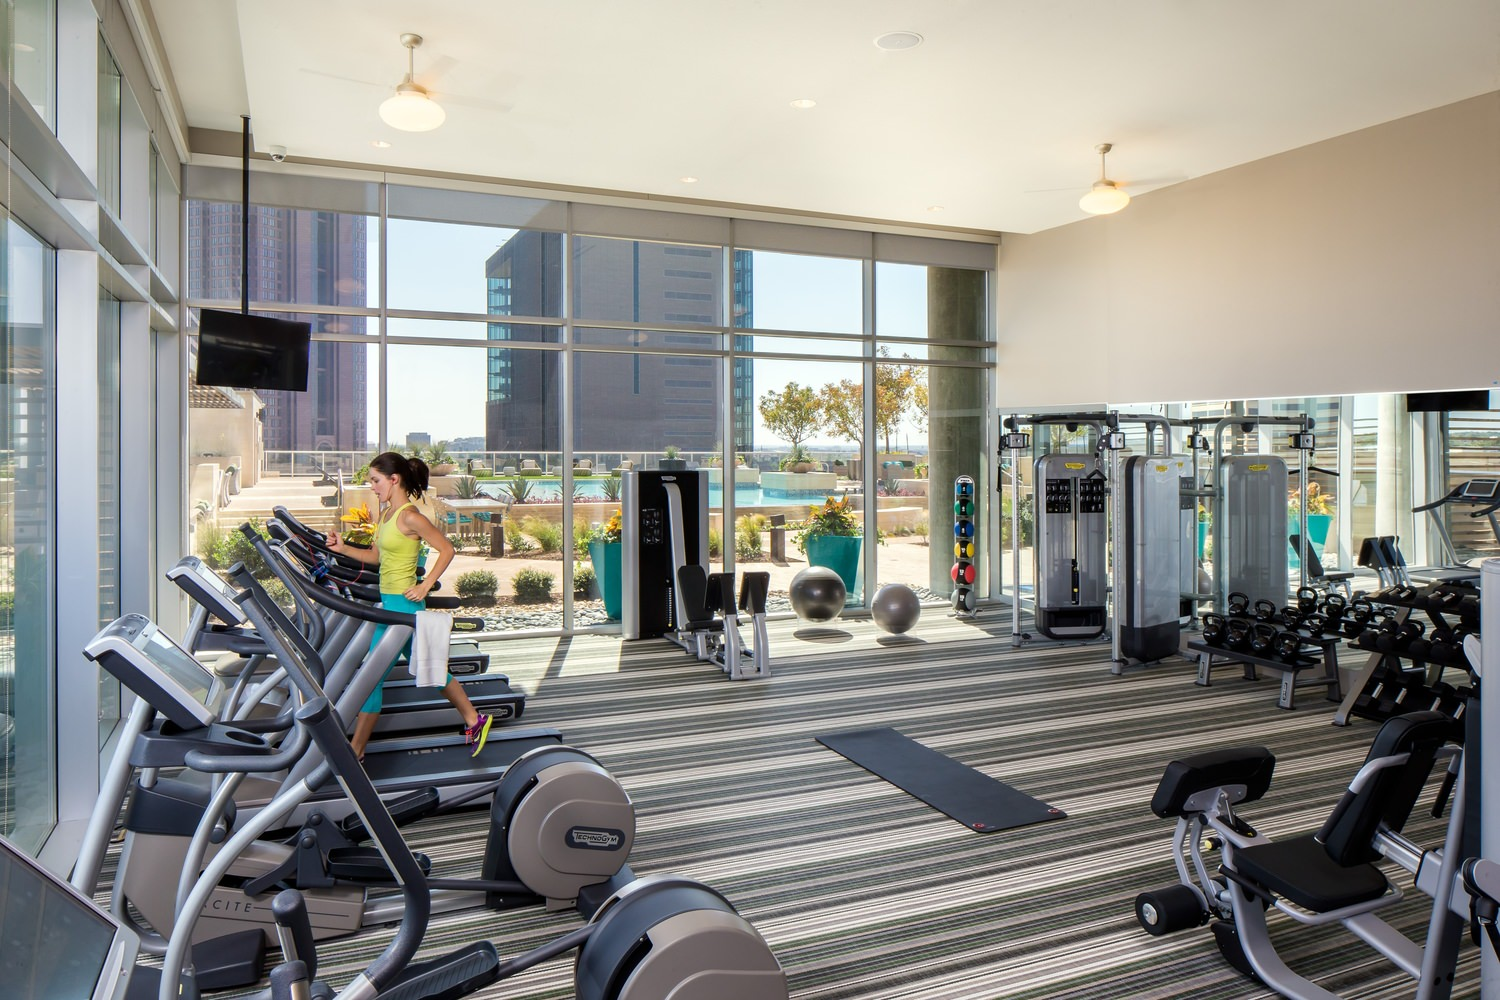 An indoor view of a gym where there are bicycles, treadmills, and strength training equipment.